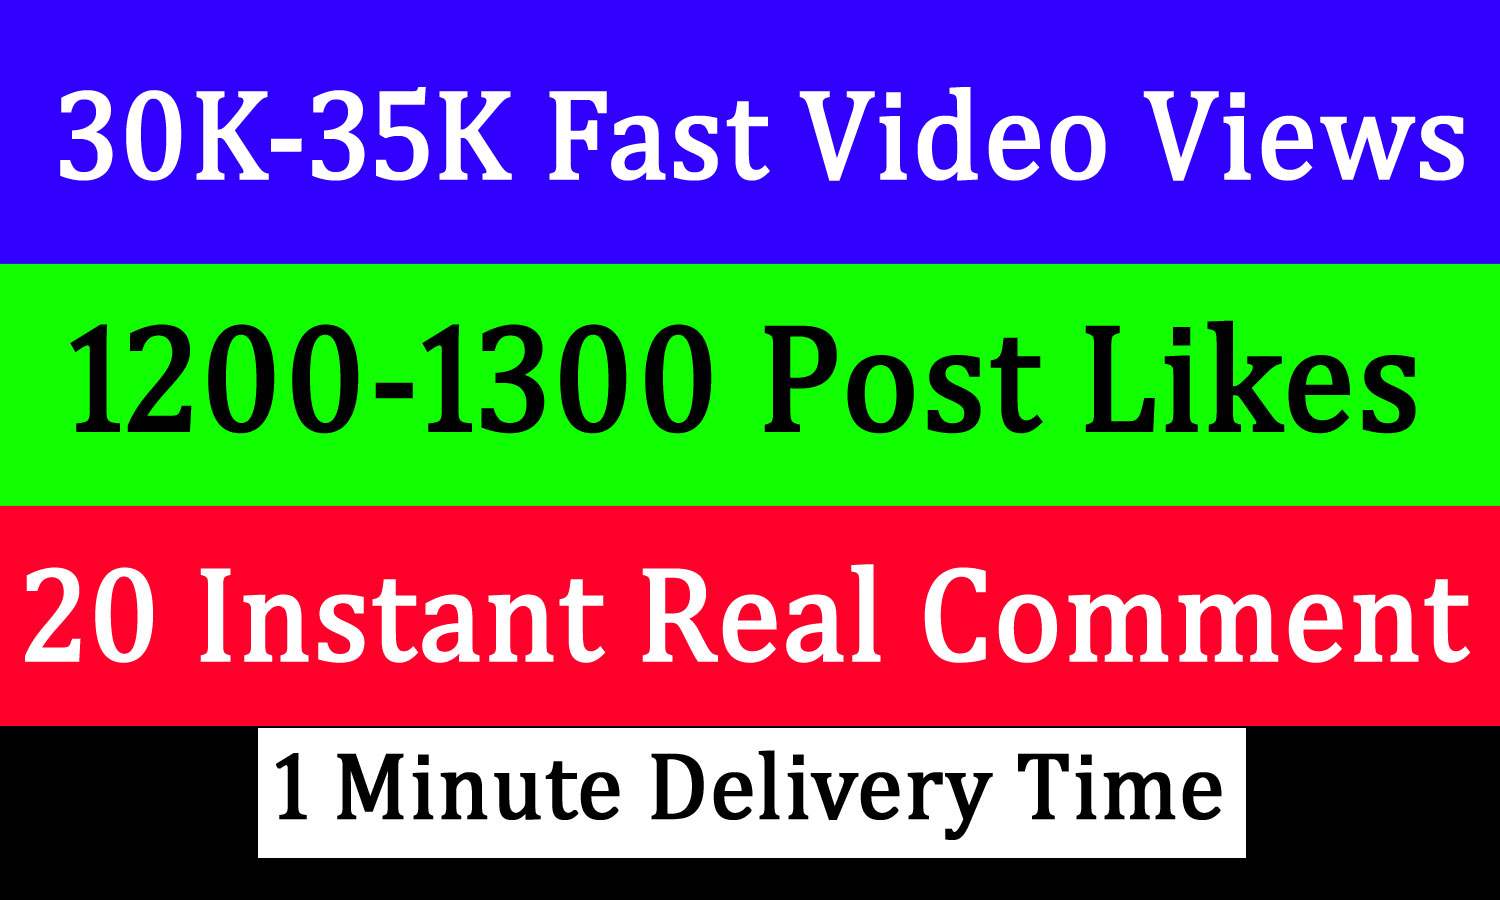 Instant 30k-35k Video Views or 1200 likes or 20 comments Promotion in 1 minute